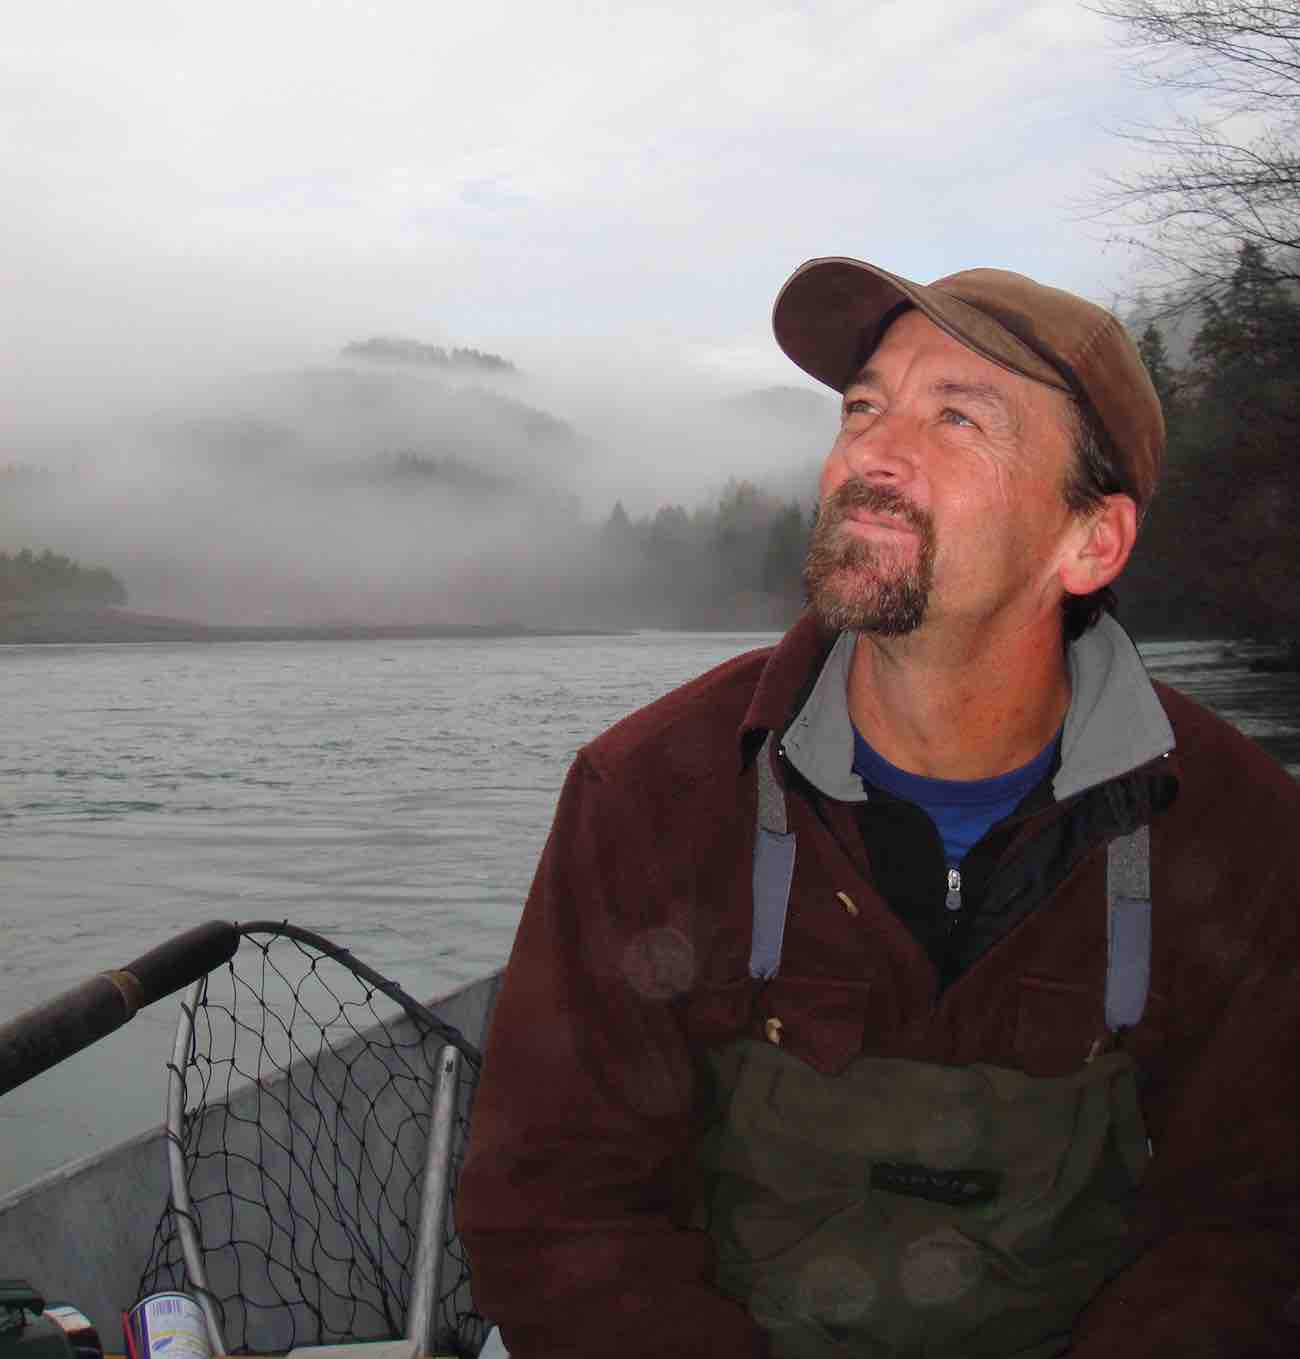 Rogue river fishing guide enjoying a morning on the Elk river from the comfort of his drift boat.